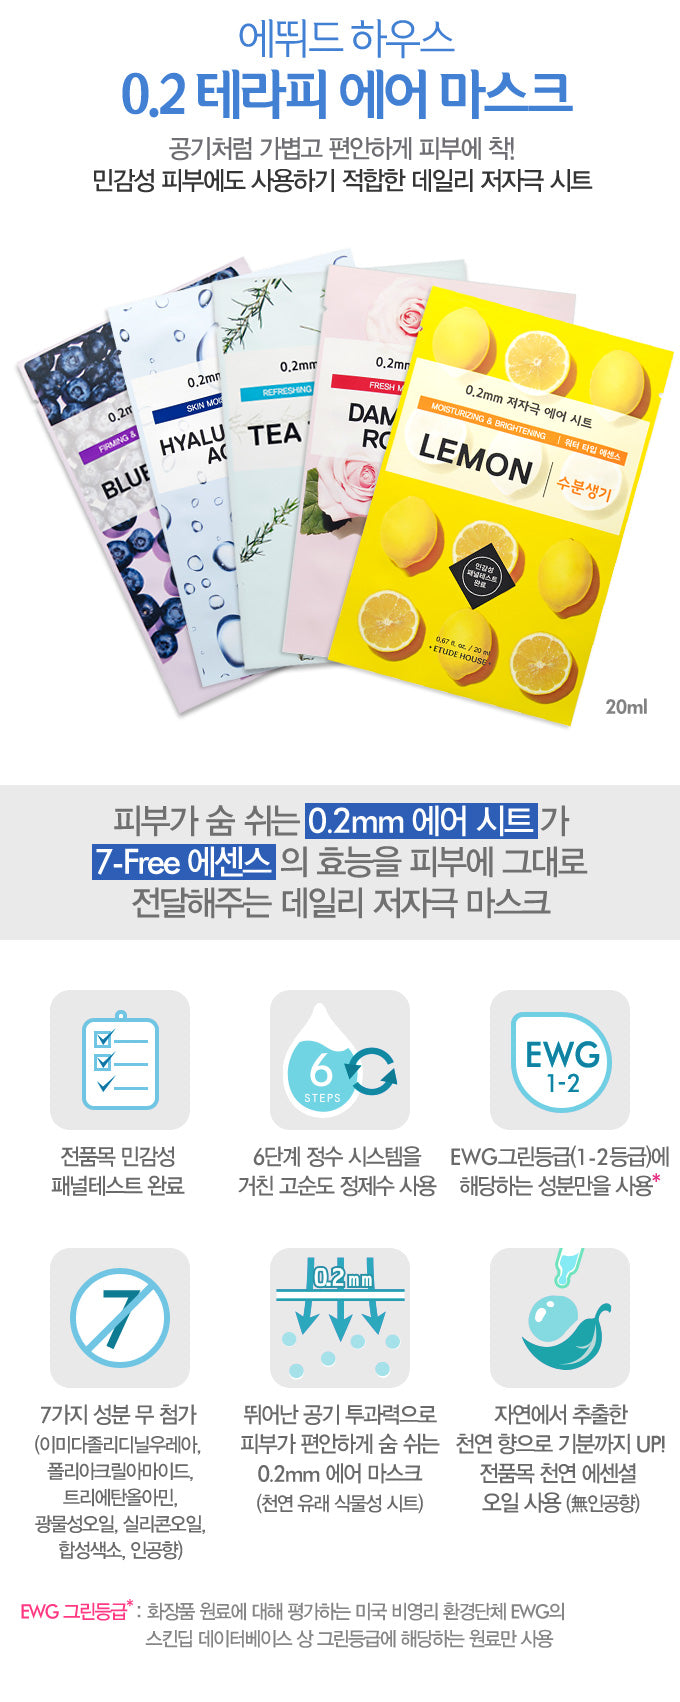 Etude House - 0.2 Therapy Air Mask